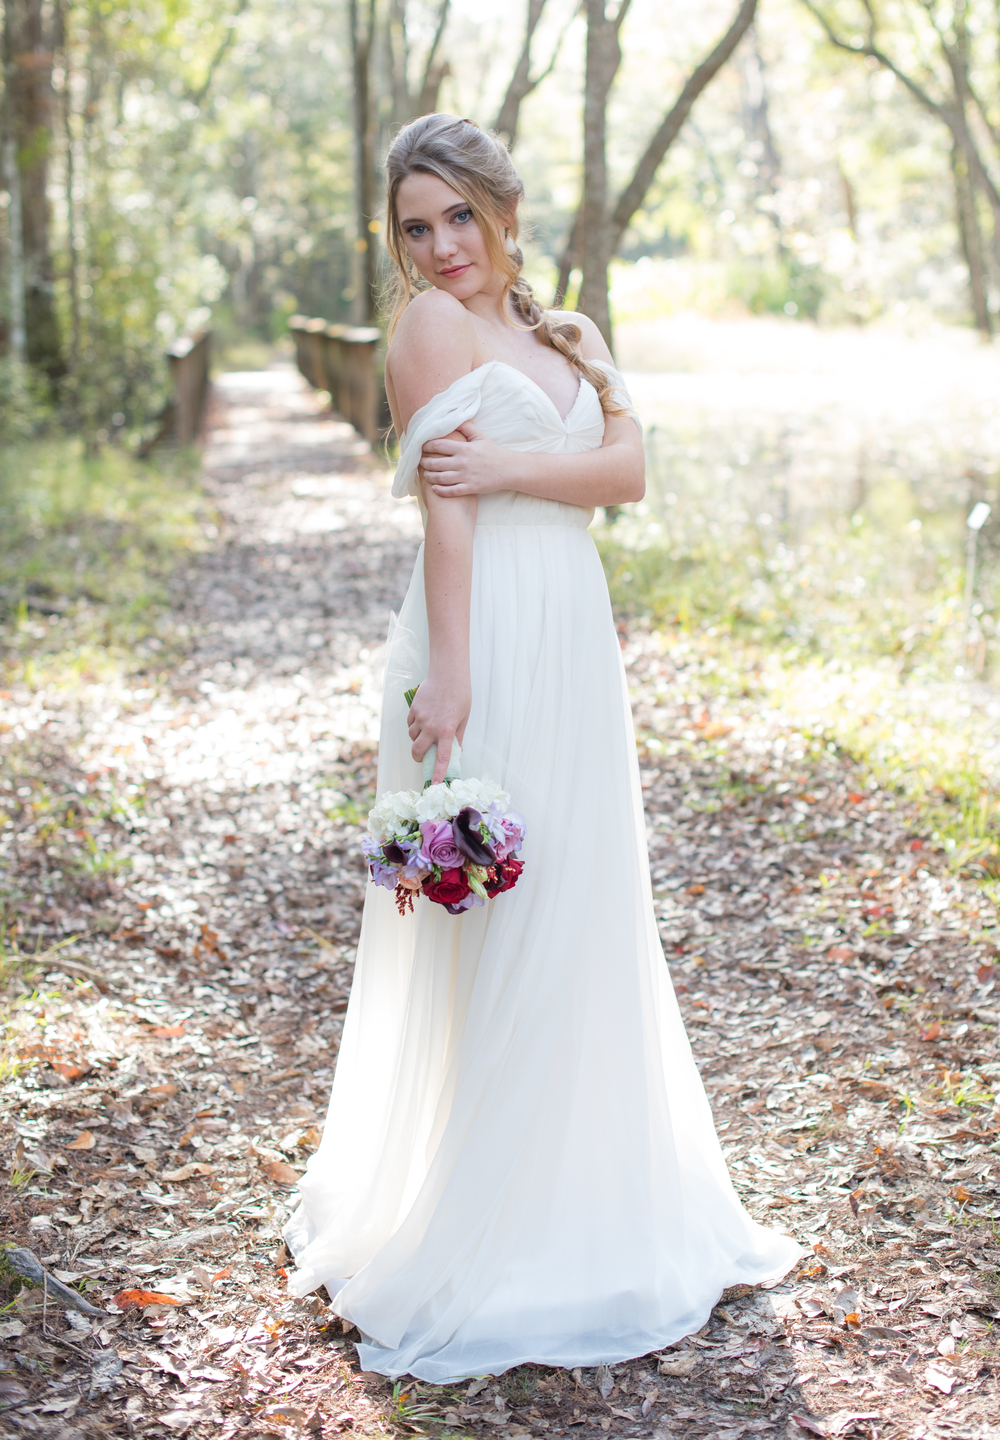 5-D-Photography-lafayette-sarah-seven-off-the-shoulder-wedding-dress-Gardenias-hilton-head- Ogeechee-Canal-Trail-ivory-and-beau-bridal-boutique-savannah-wedding-dresses-savannah-bridal-boutique-savannah-weddings-hilton-head-bridal-6.jpg